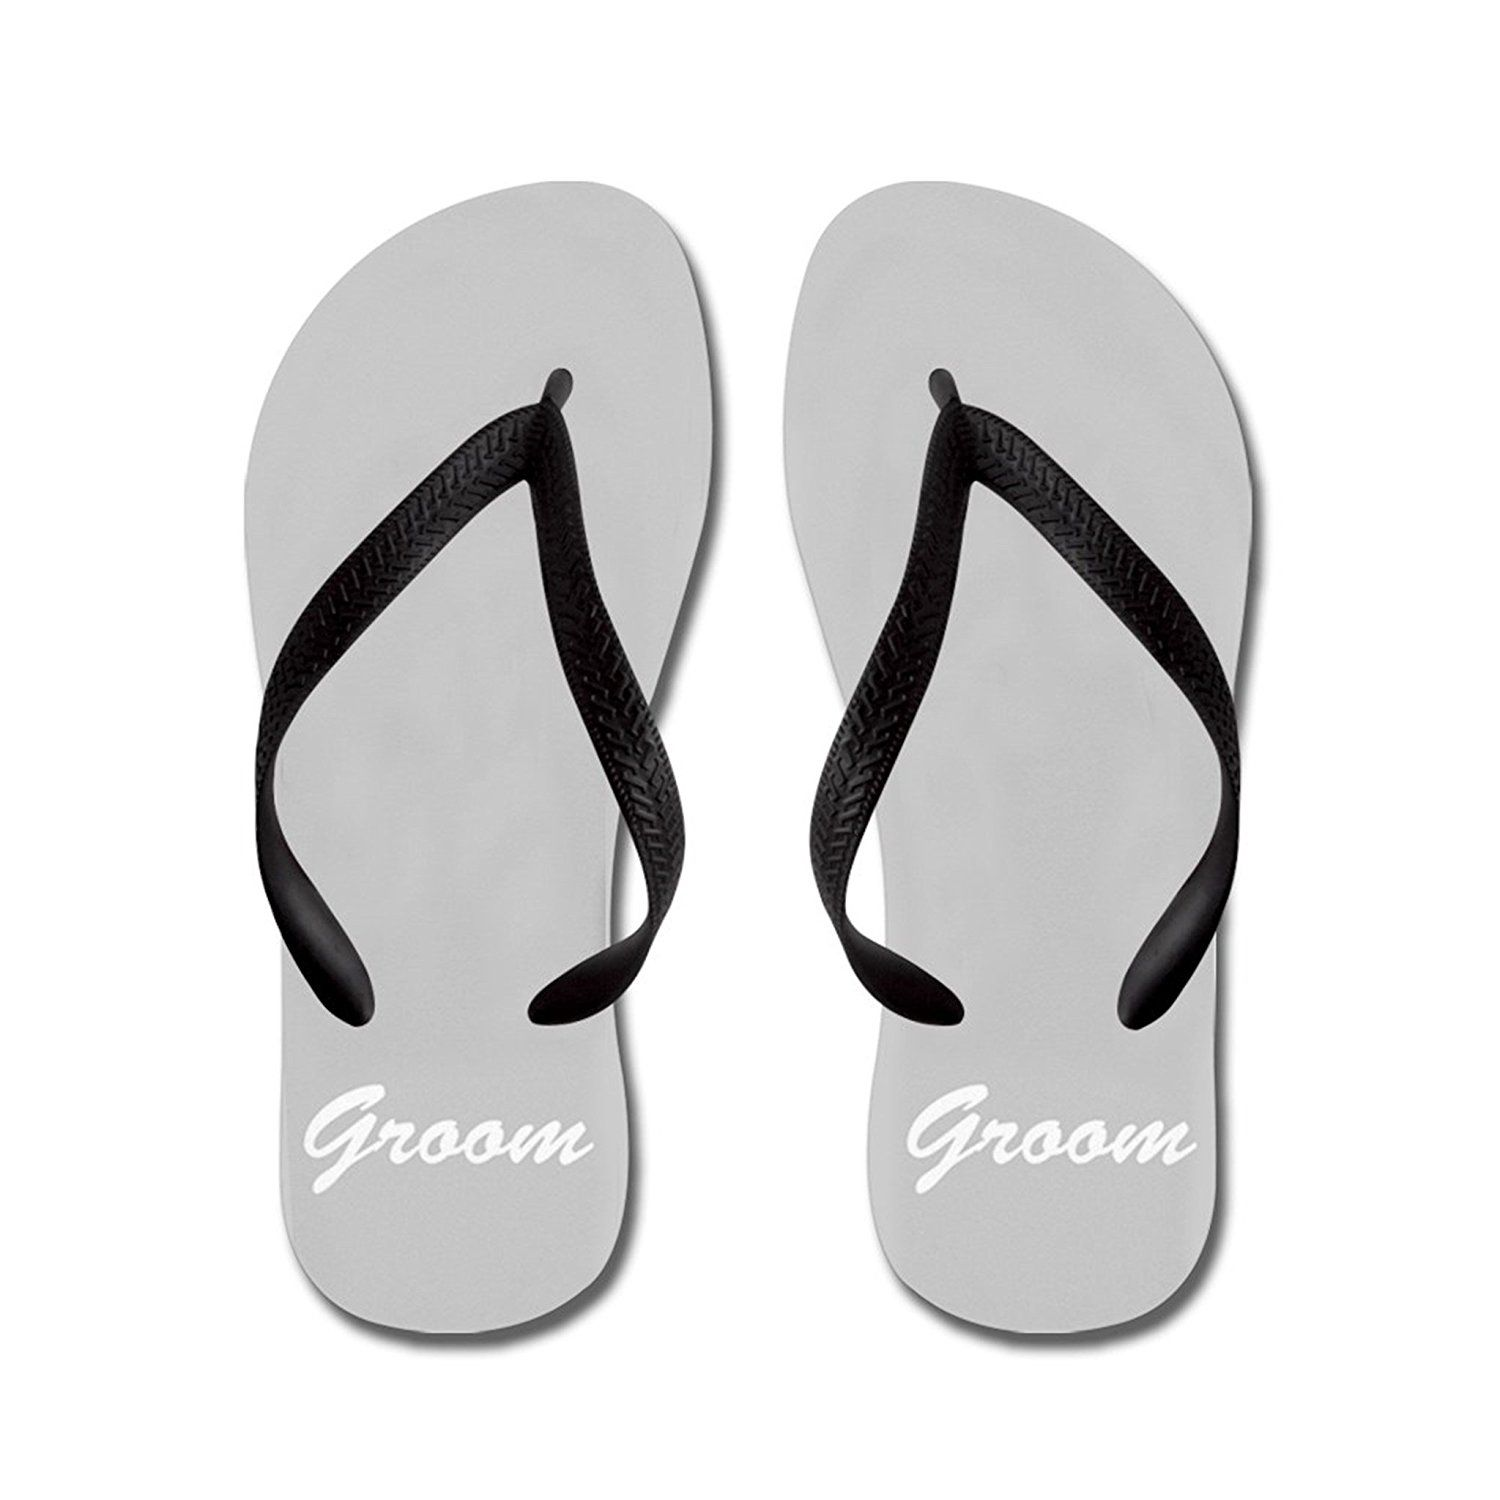 6aa0e2998 Maliyna Bride and Groom Flip Flops for Him    Want to know more ...